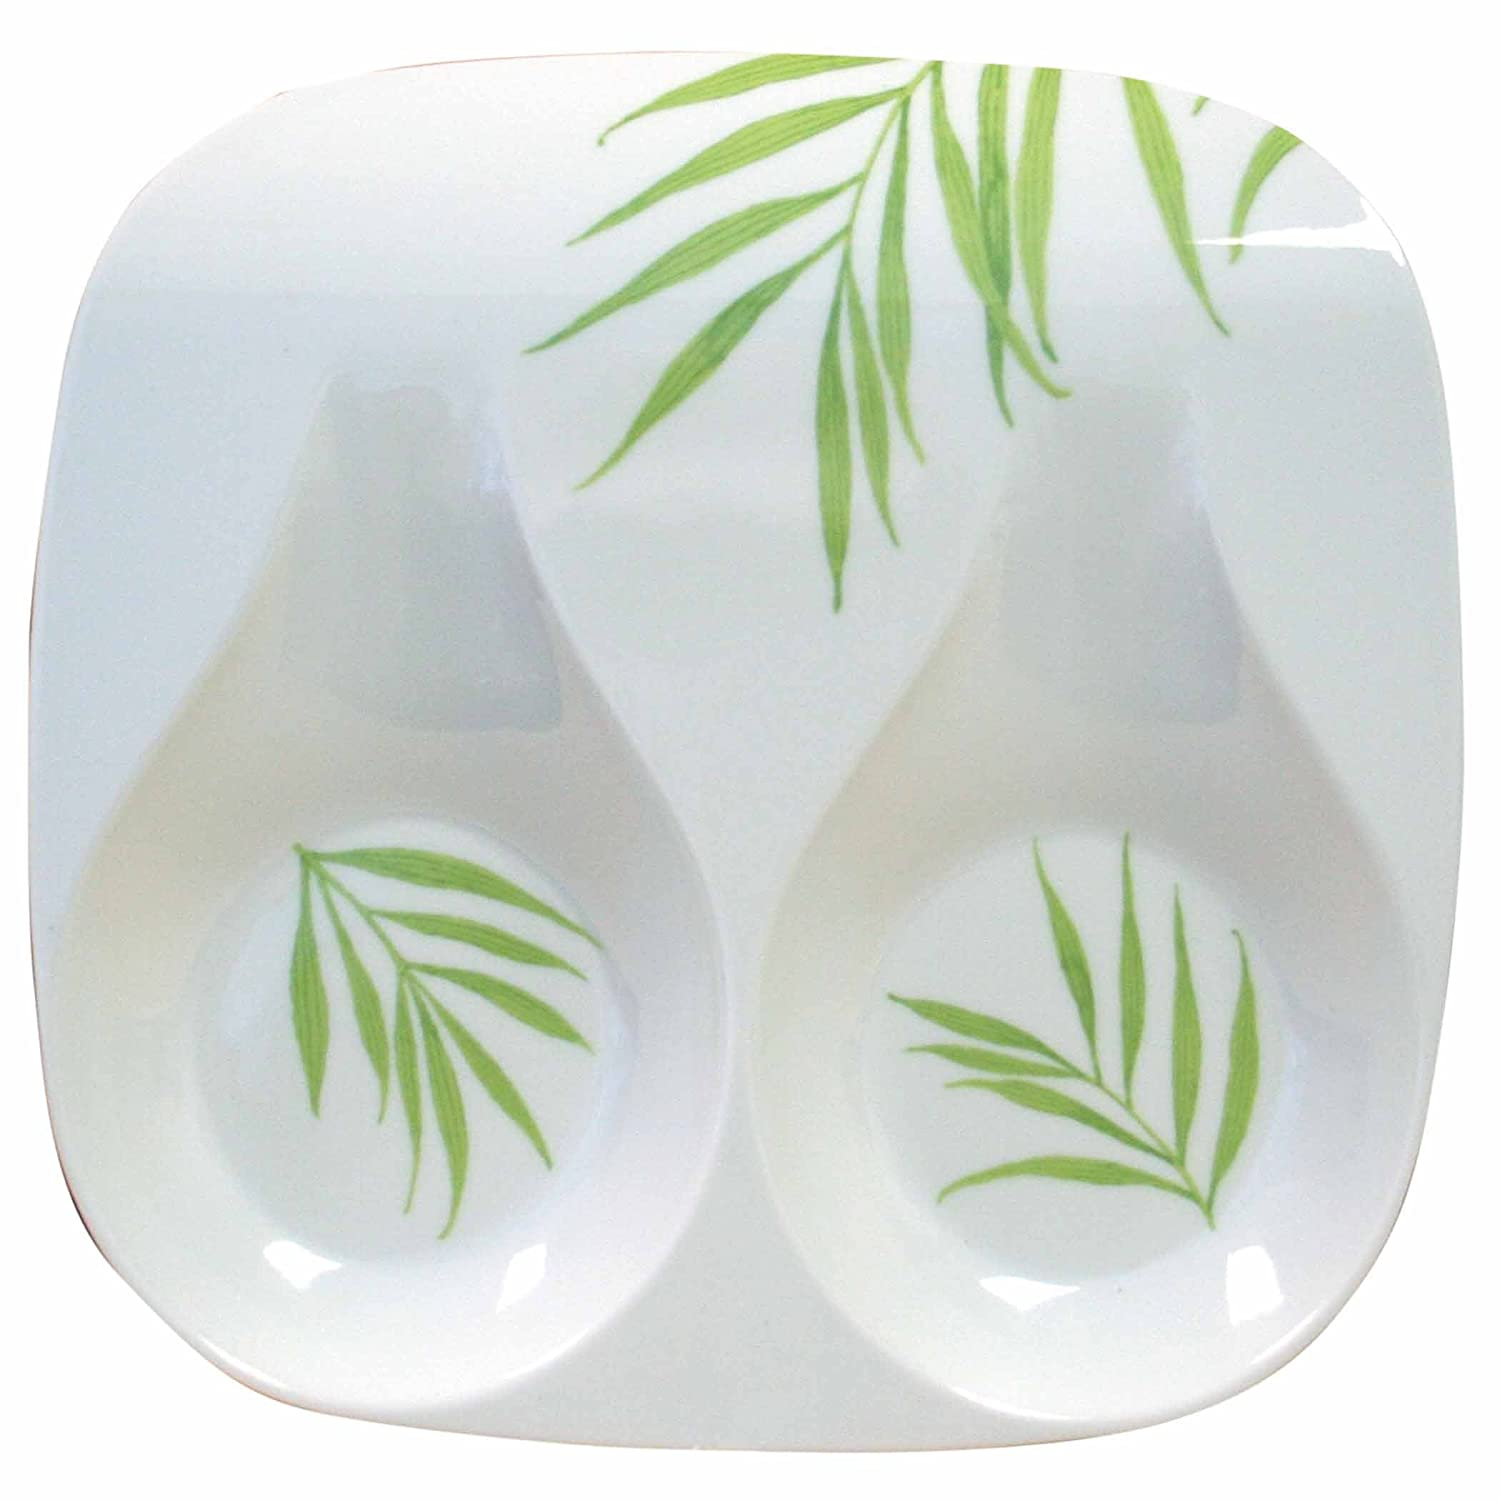 Bamboo Leaf Corelle Coordinates Double Spoon Rest